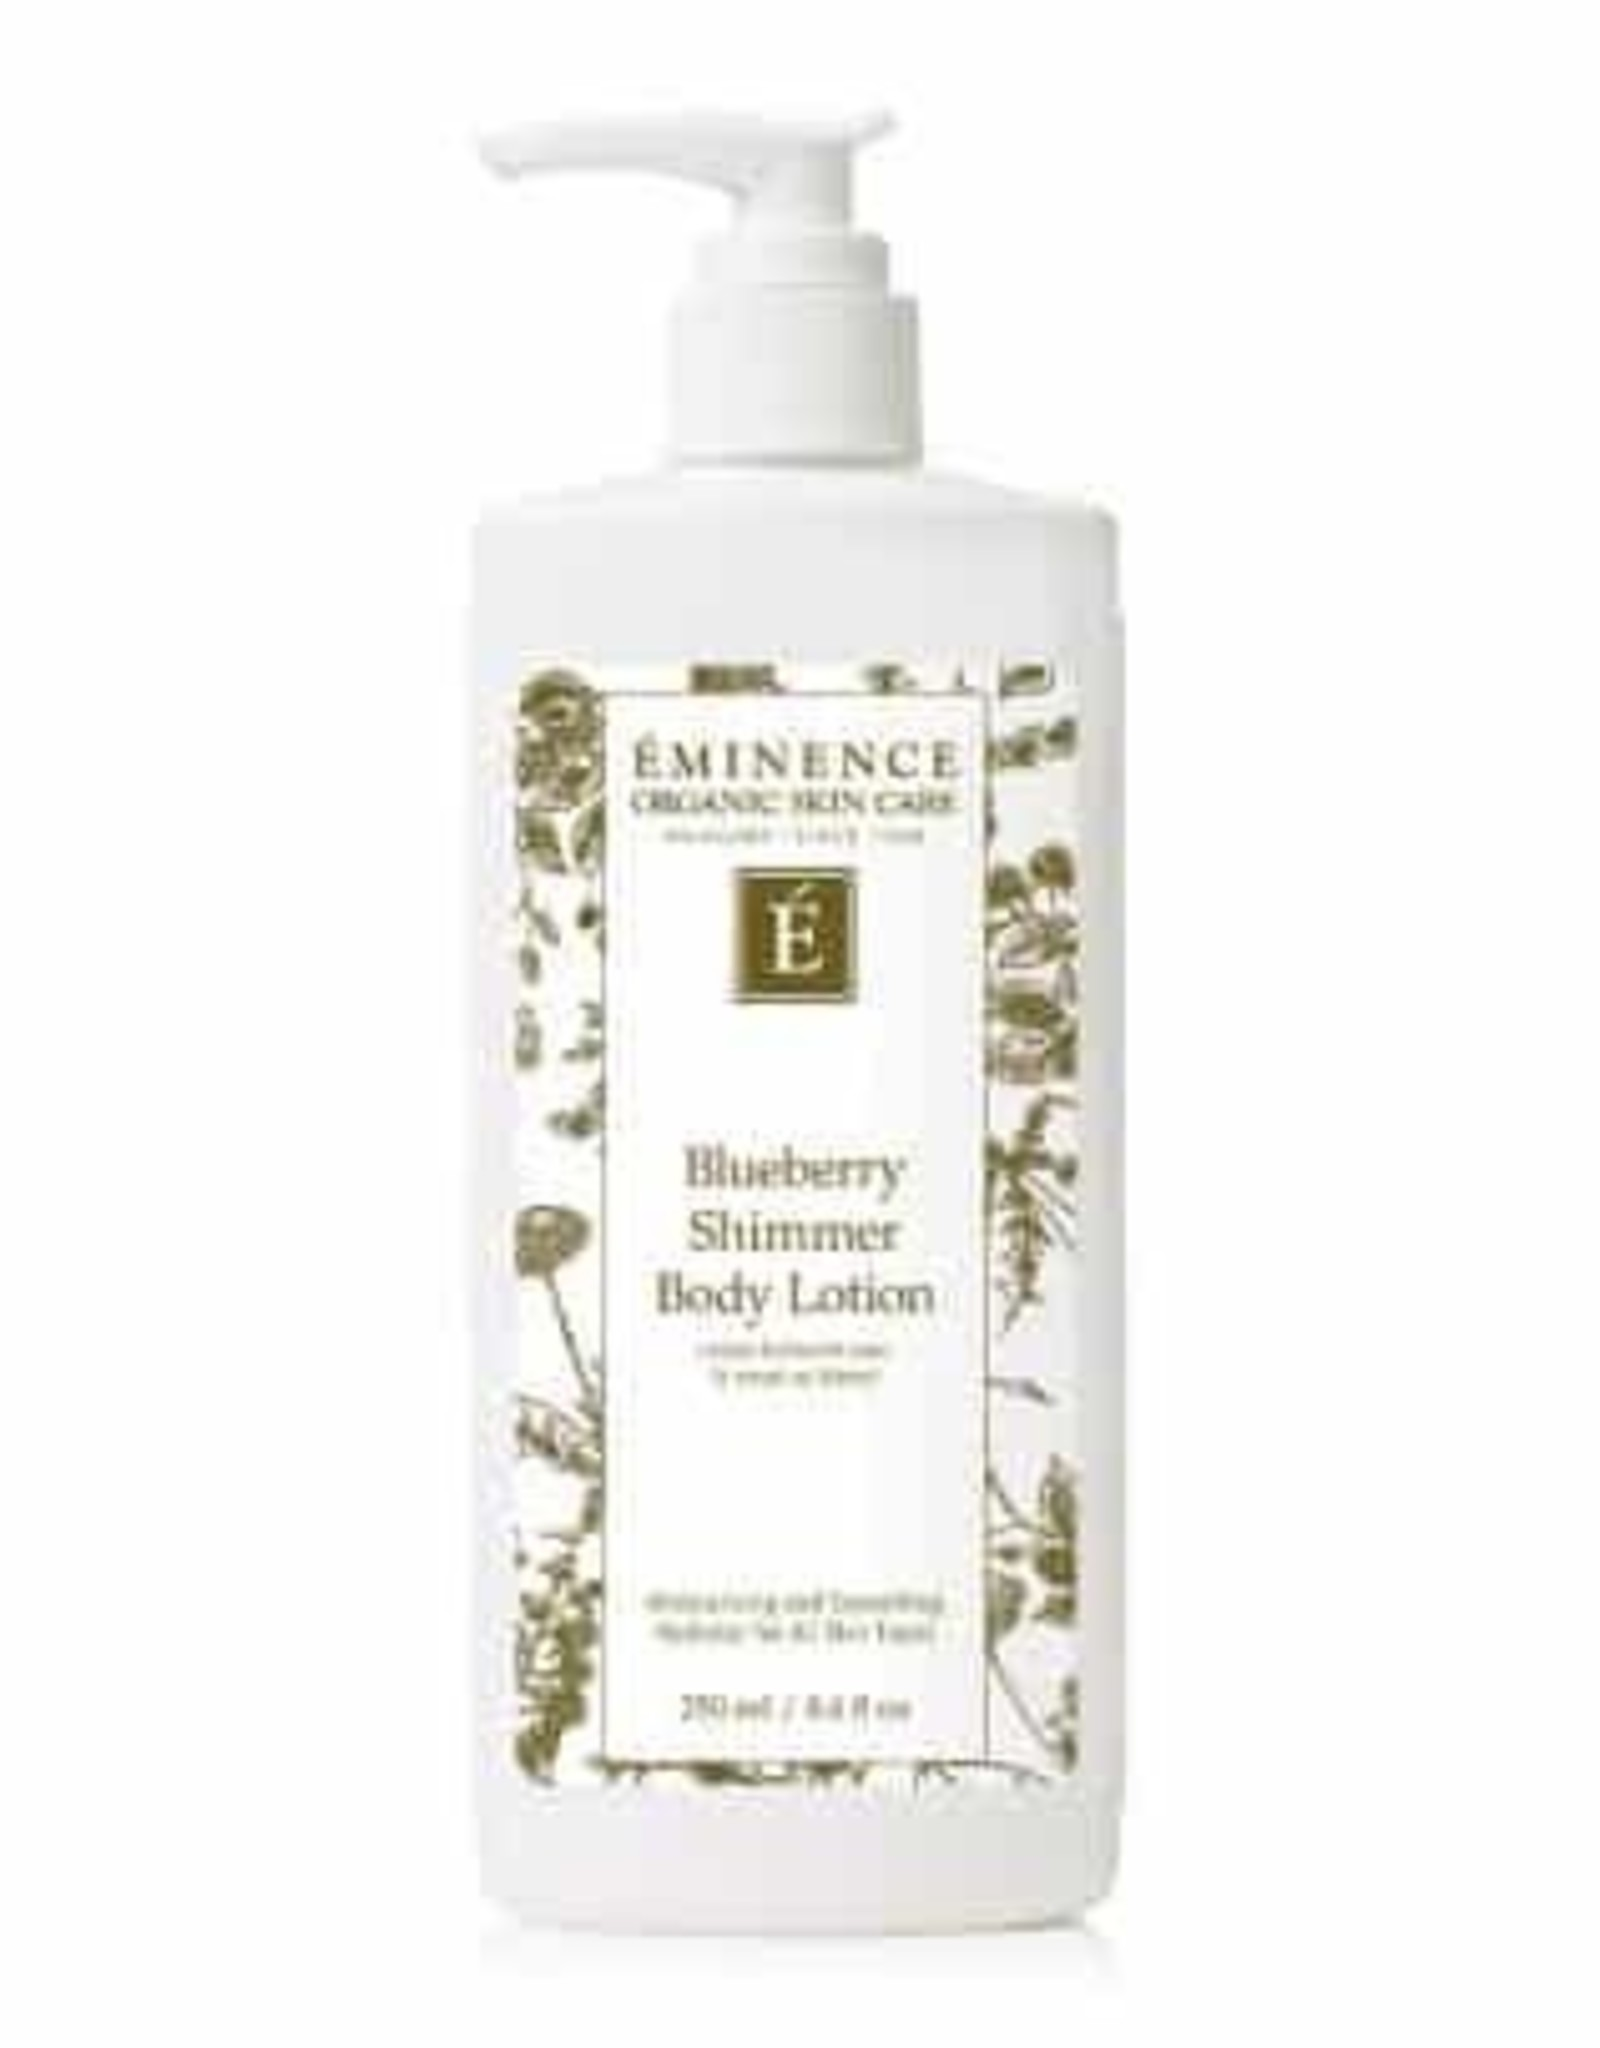 Eminence Blueberry Shimmer Body Lotion